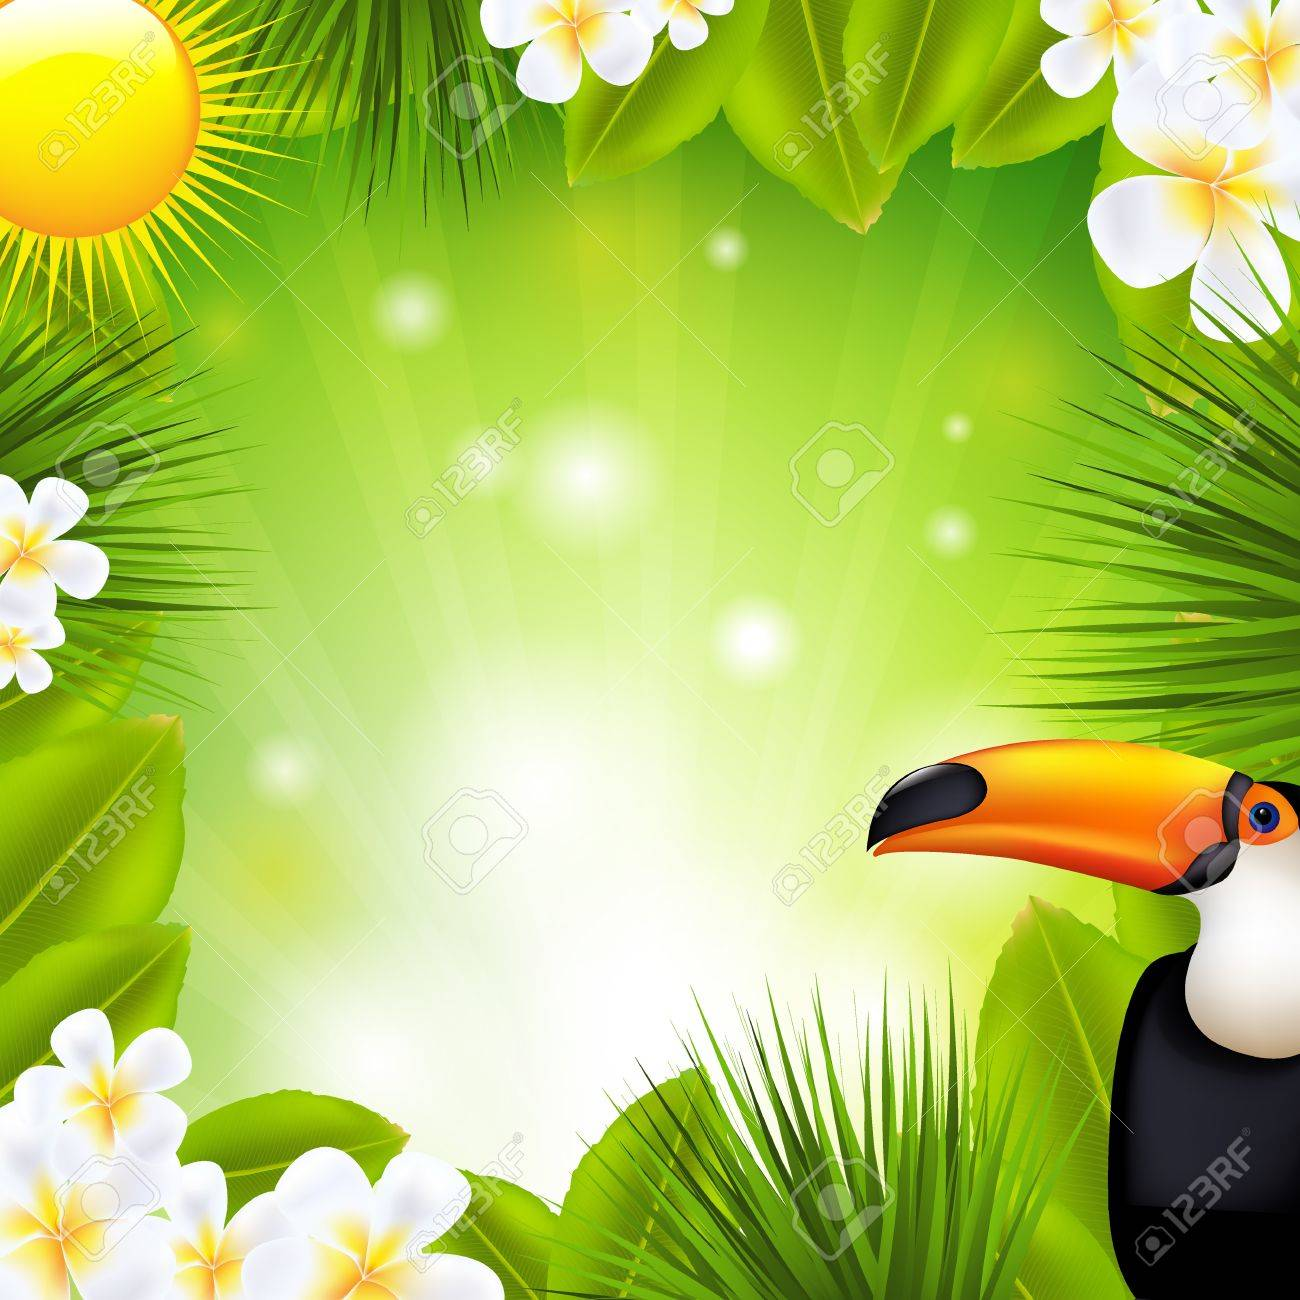 Green Background With Tropical Elements, Vector Illustration Stock Vector - 14513225